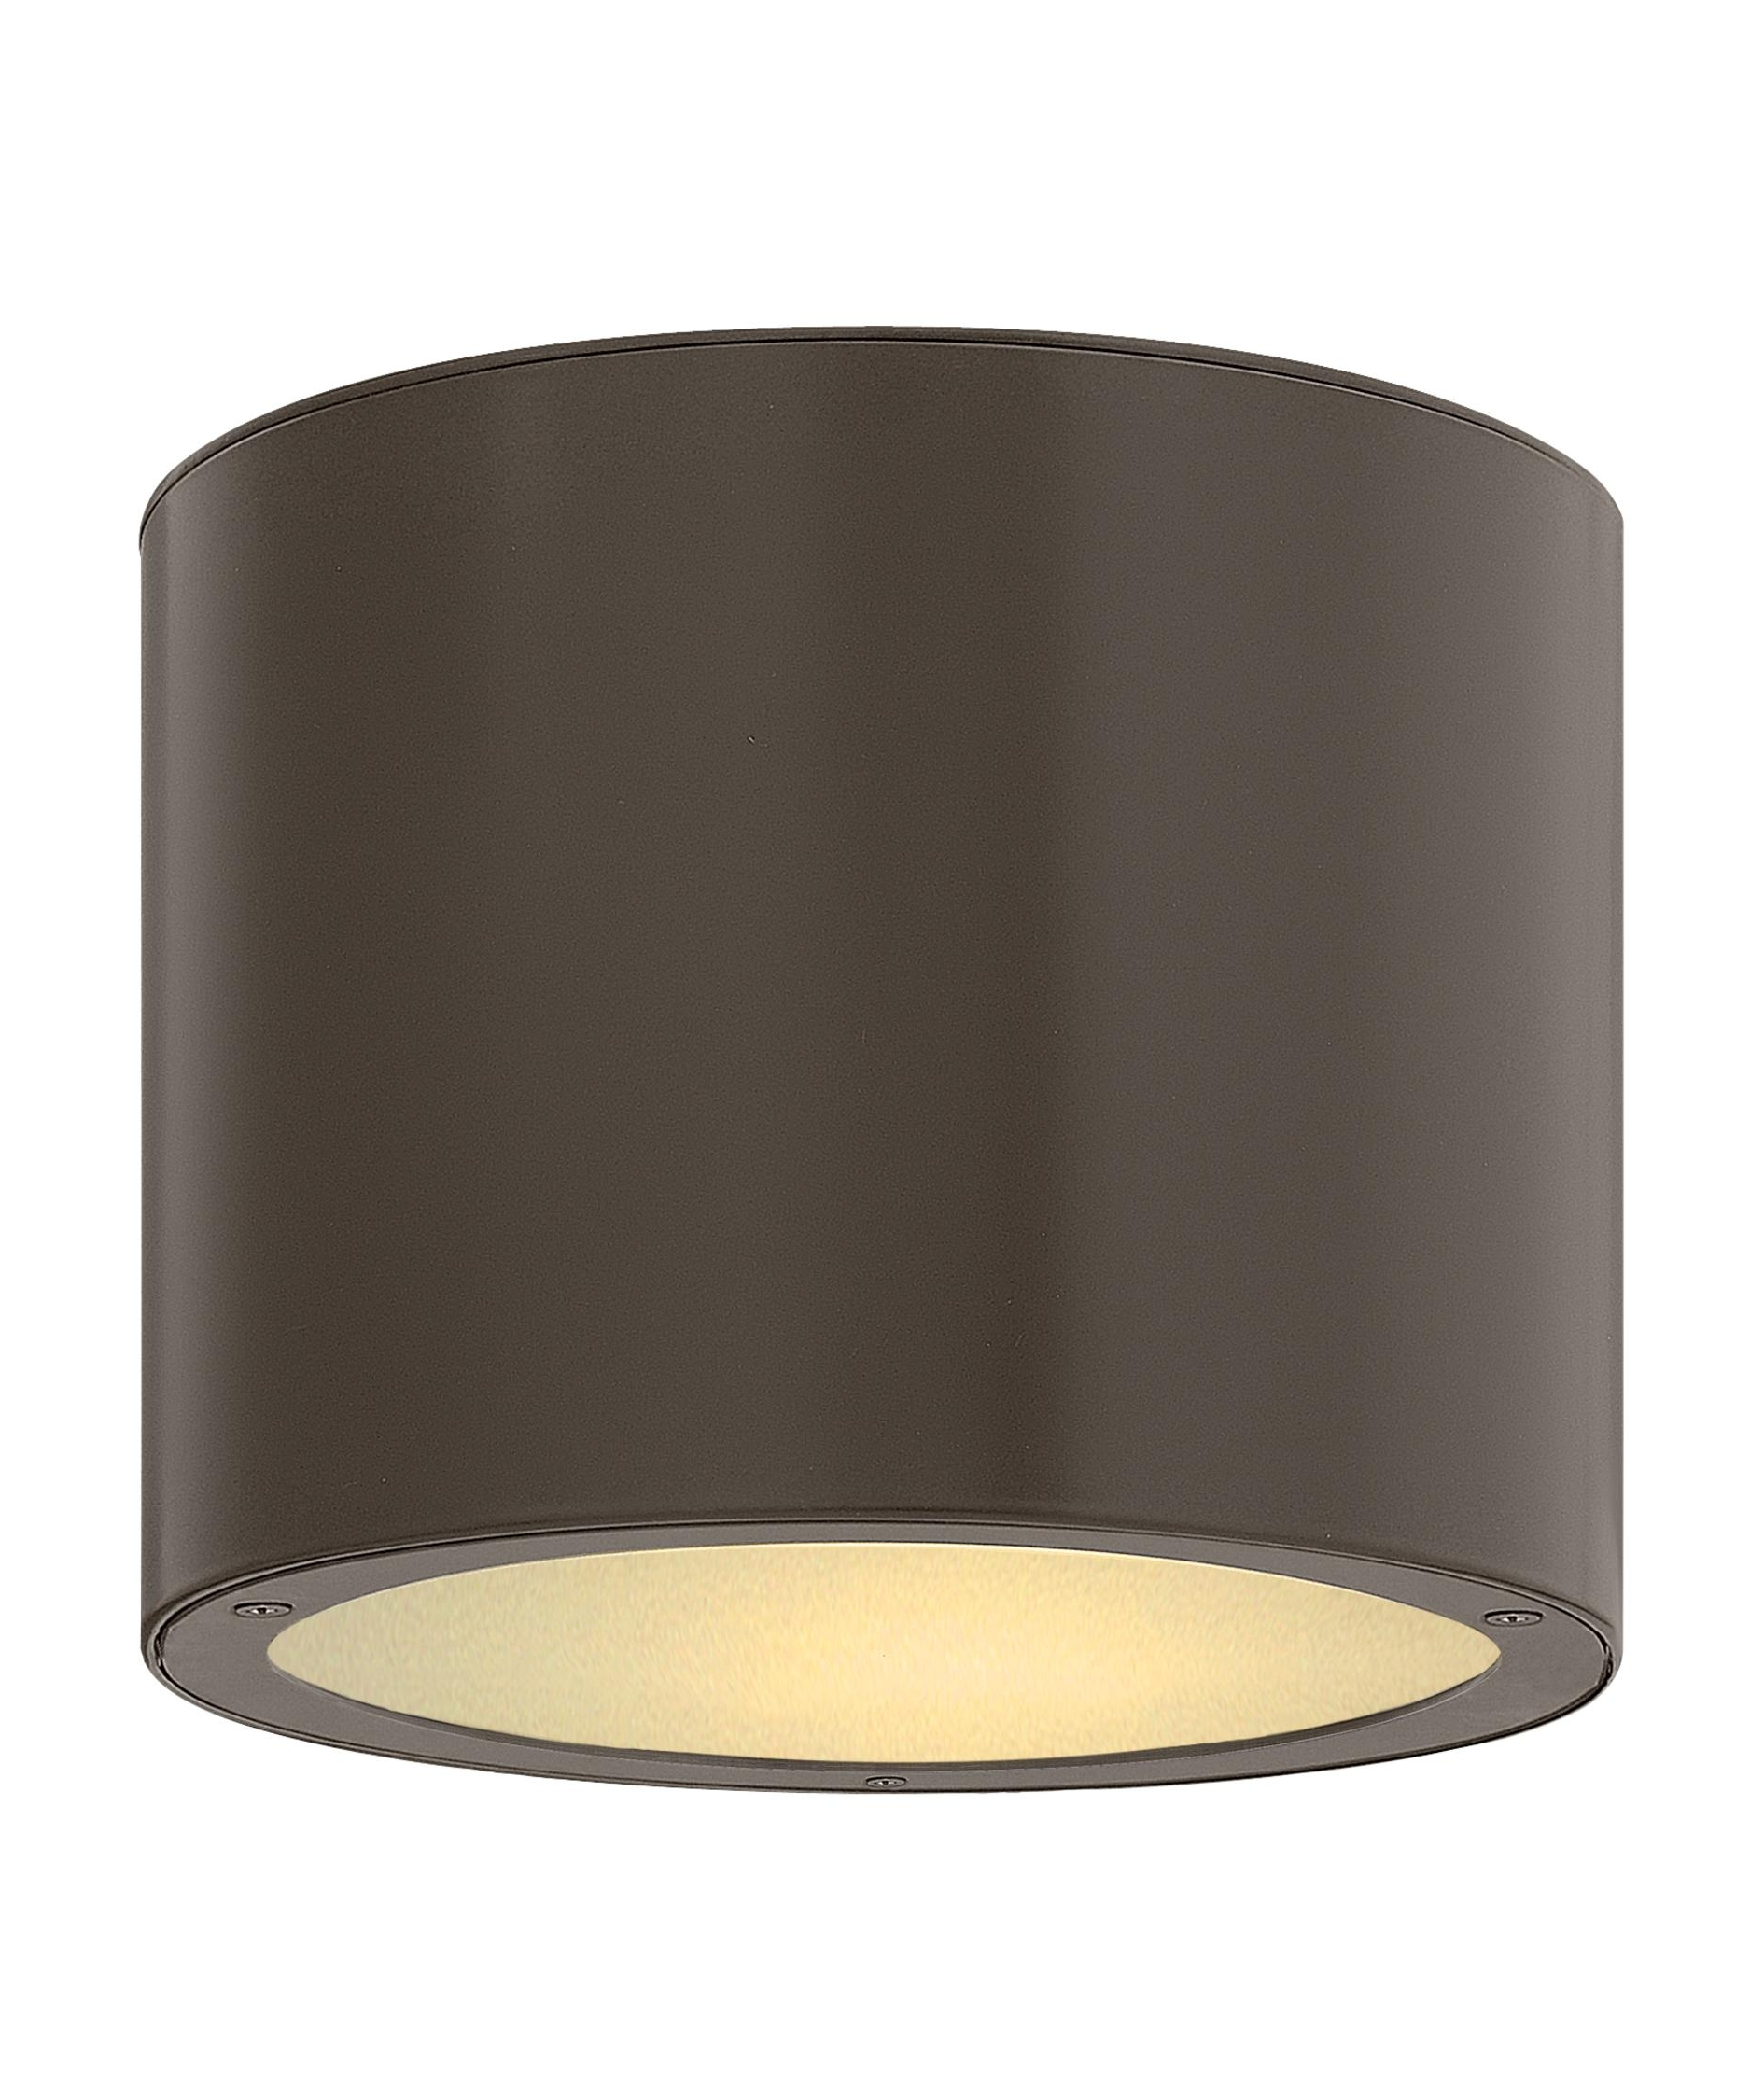 Hinkley Lighting 1663 Luna 8 Inch Wide 1 Light Outdoor Flush Mount For Famous Outdoor Ceiling Lights (View 6 of 20)